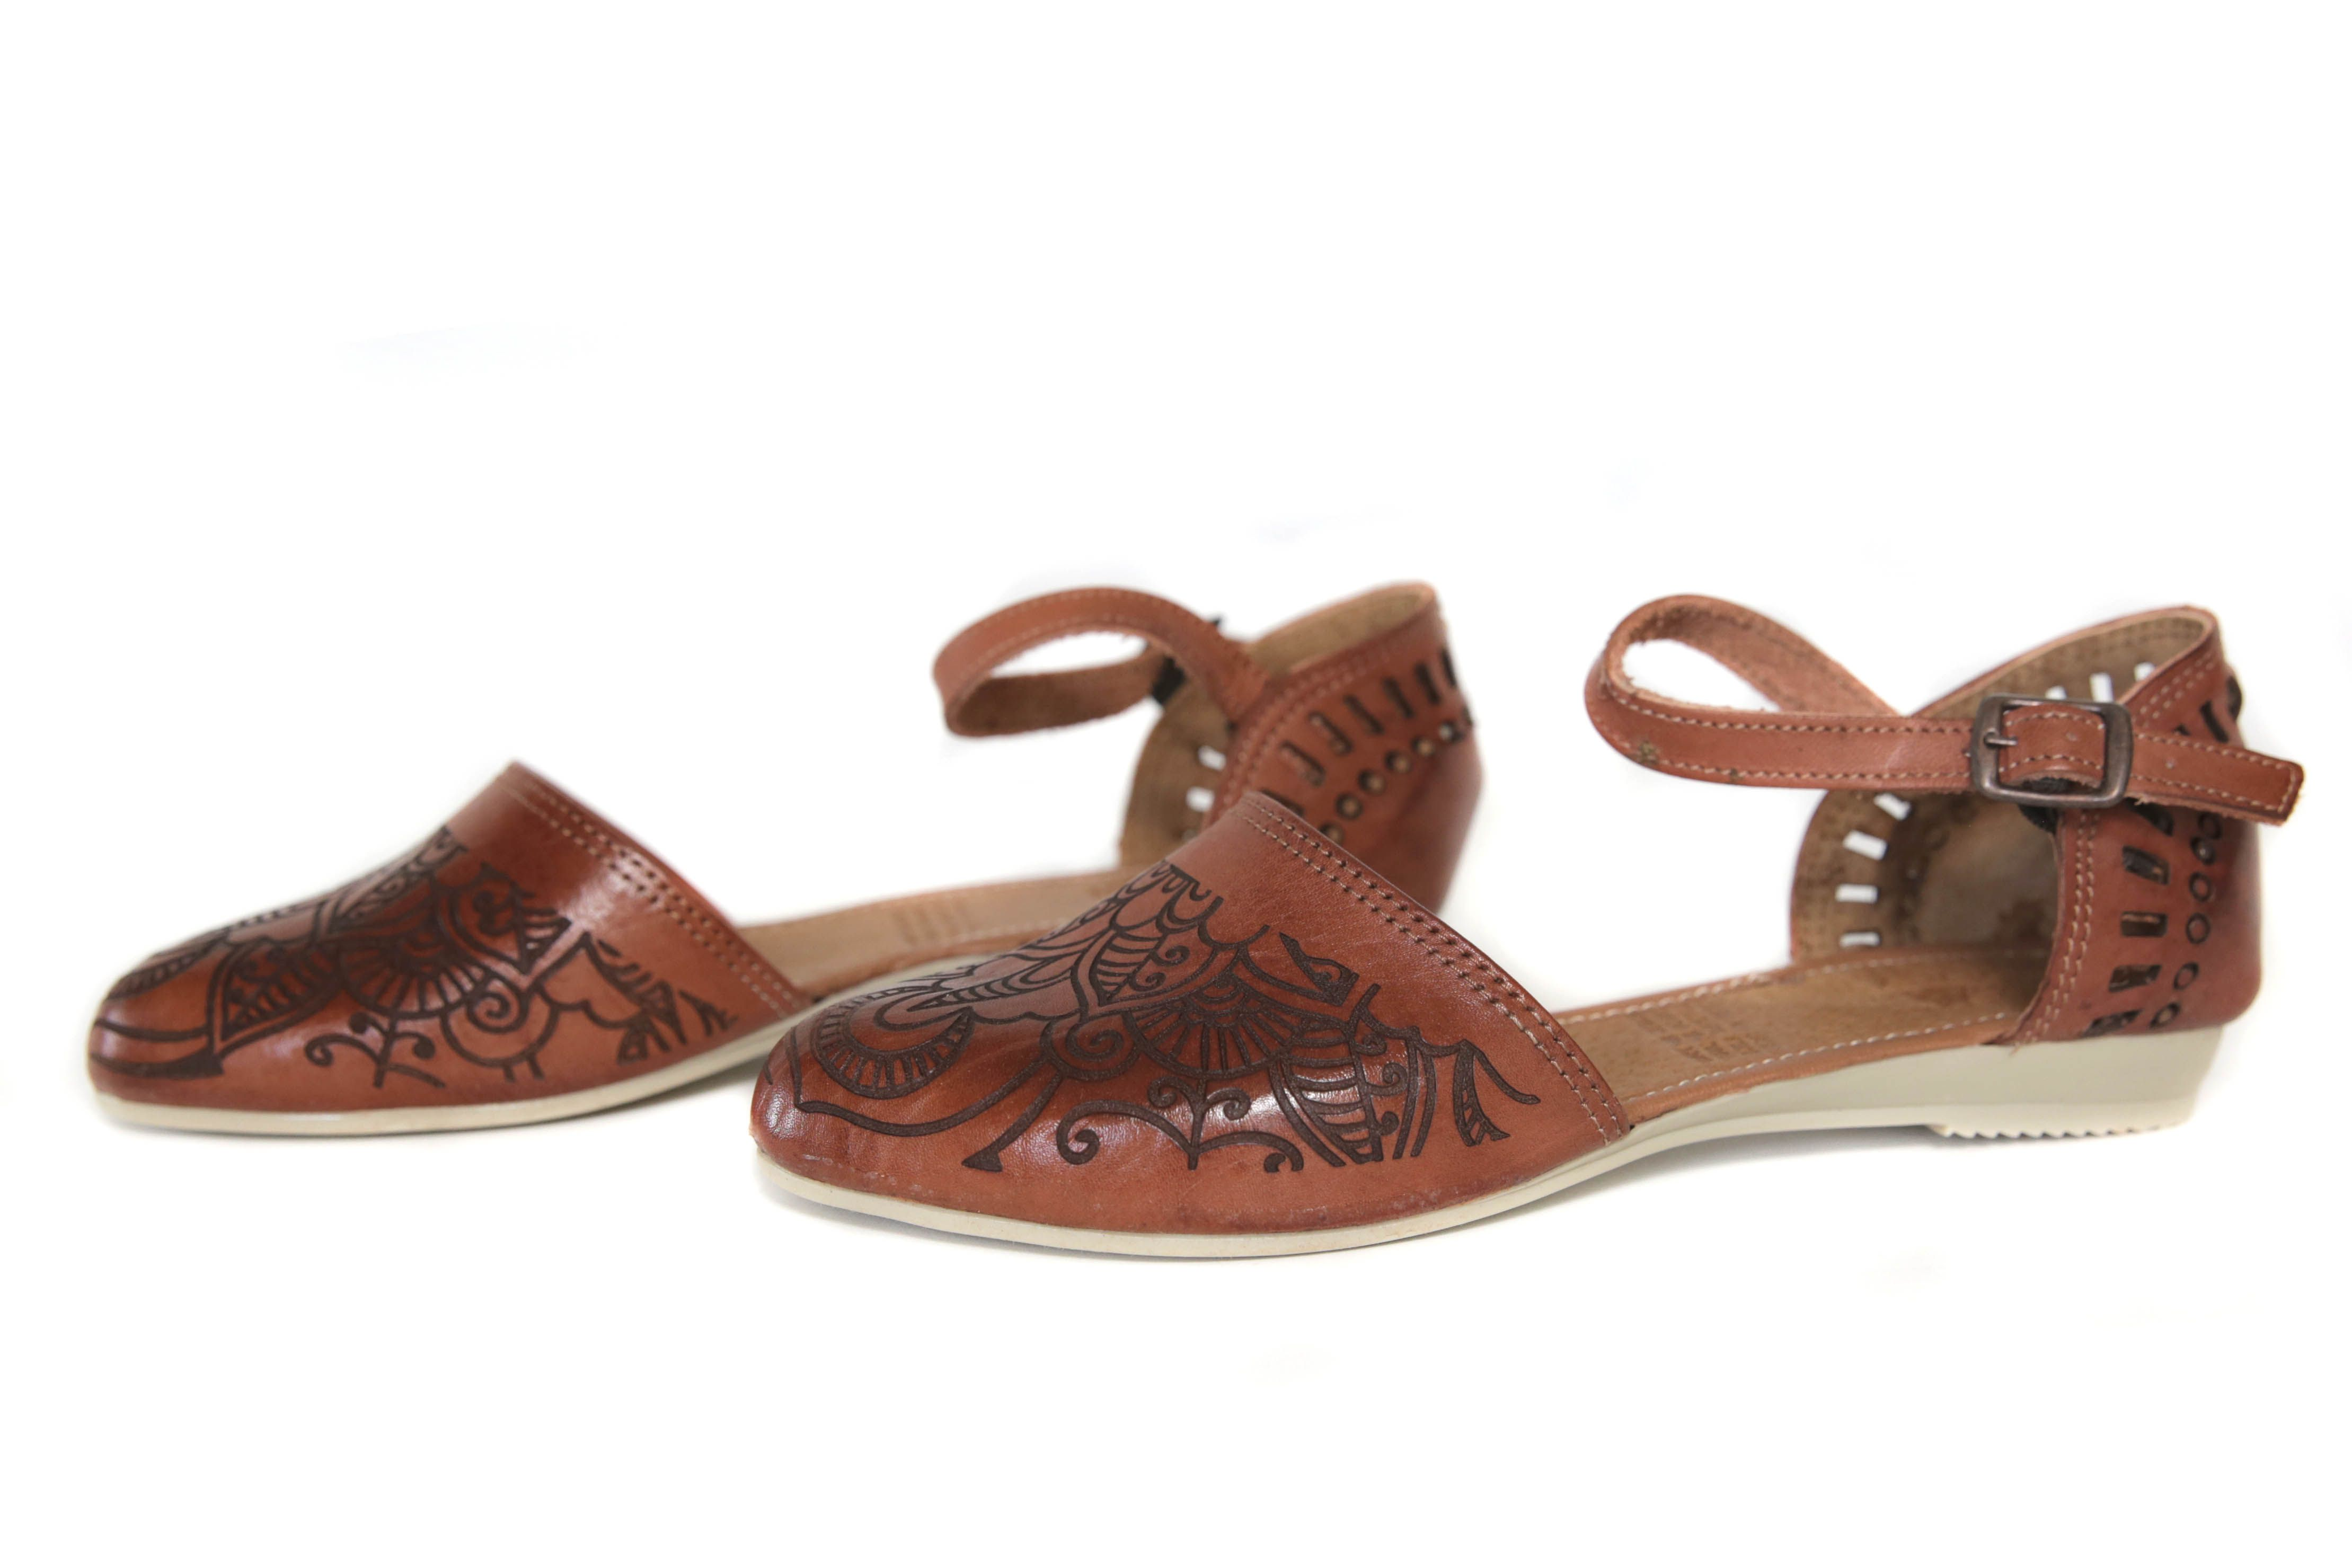 7e0a43a21af3c Women s Huarache Sandals - Niebla Chedron These Mexican Huarache Sandals  are the type of huaraches that you find the local